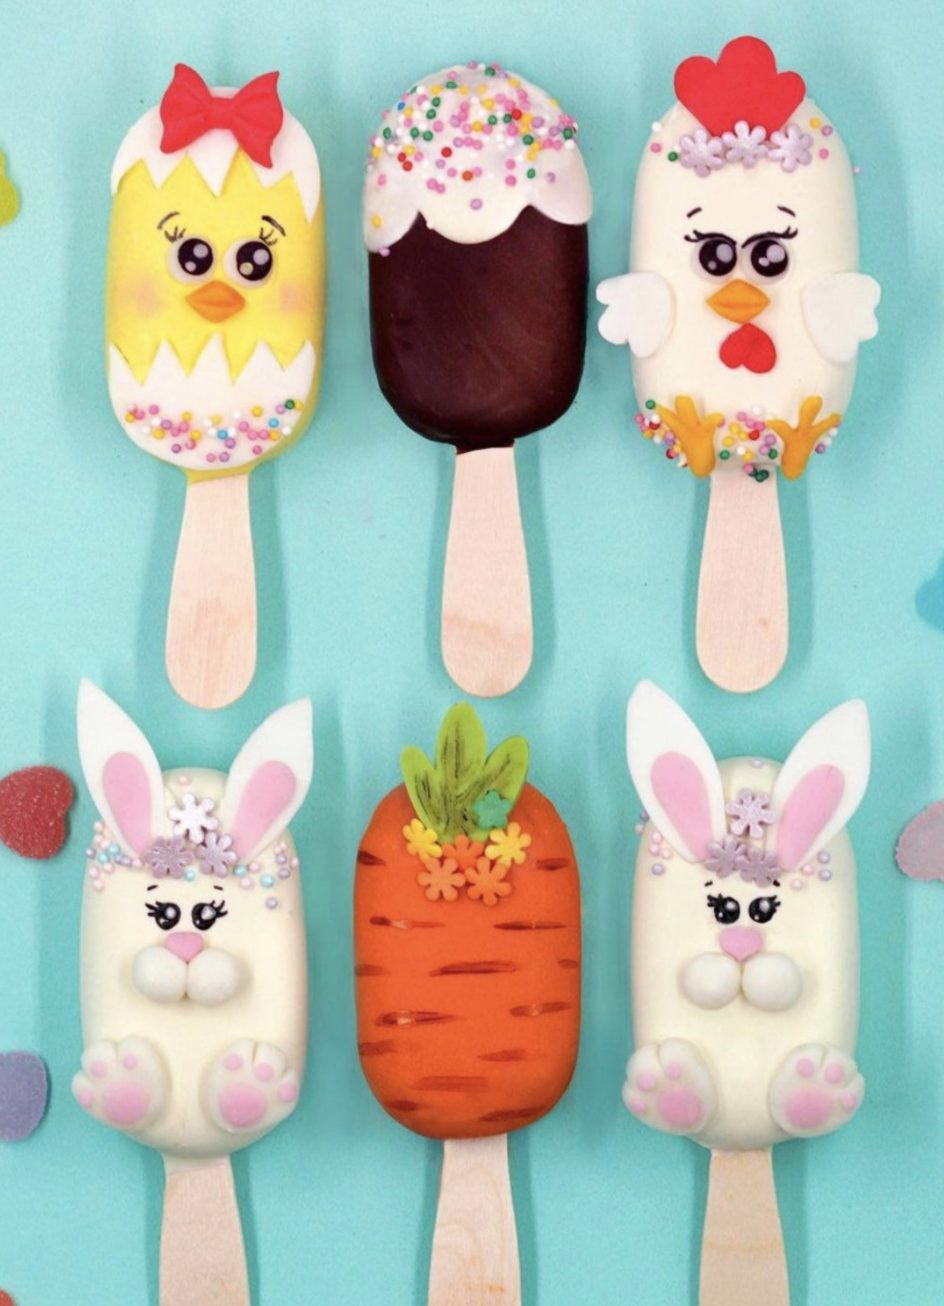 Cute Decorated Easter Cakesicles With Bunny, Chick, Egg and Carrot